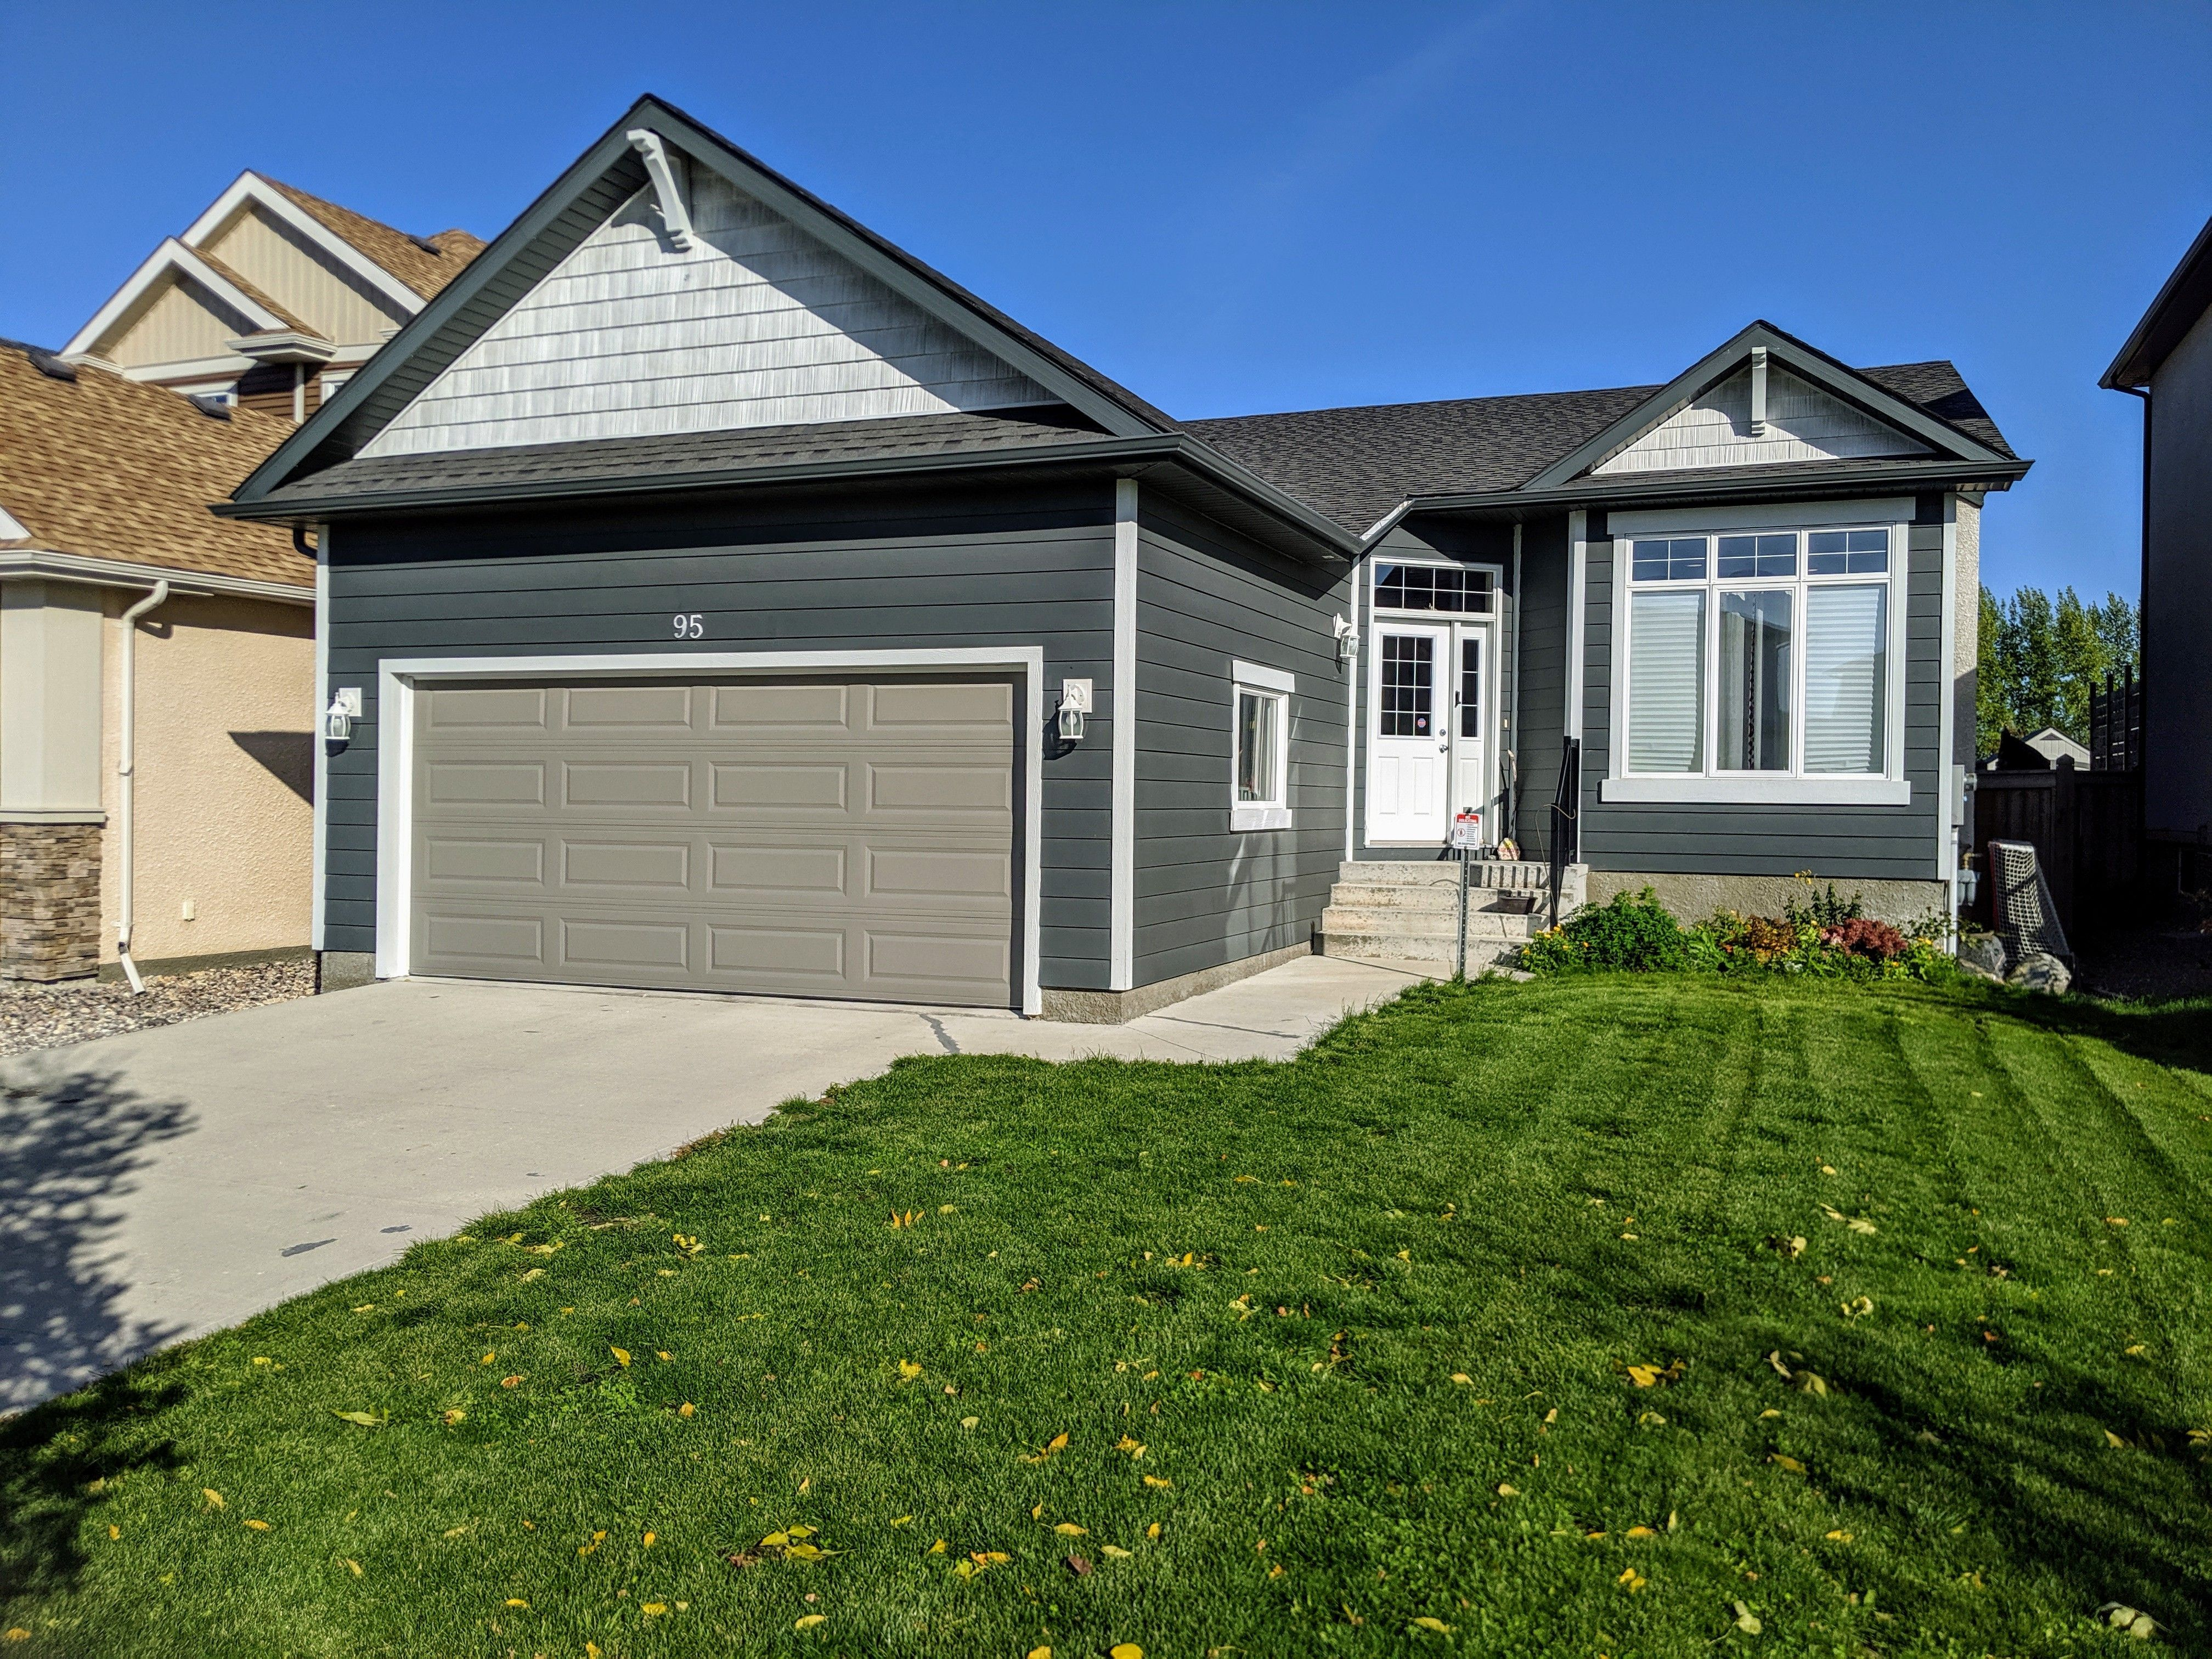 Check out this sensational 1,500 sqft bungalow located in